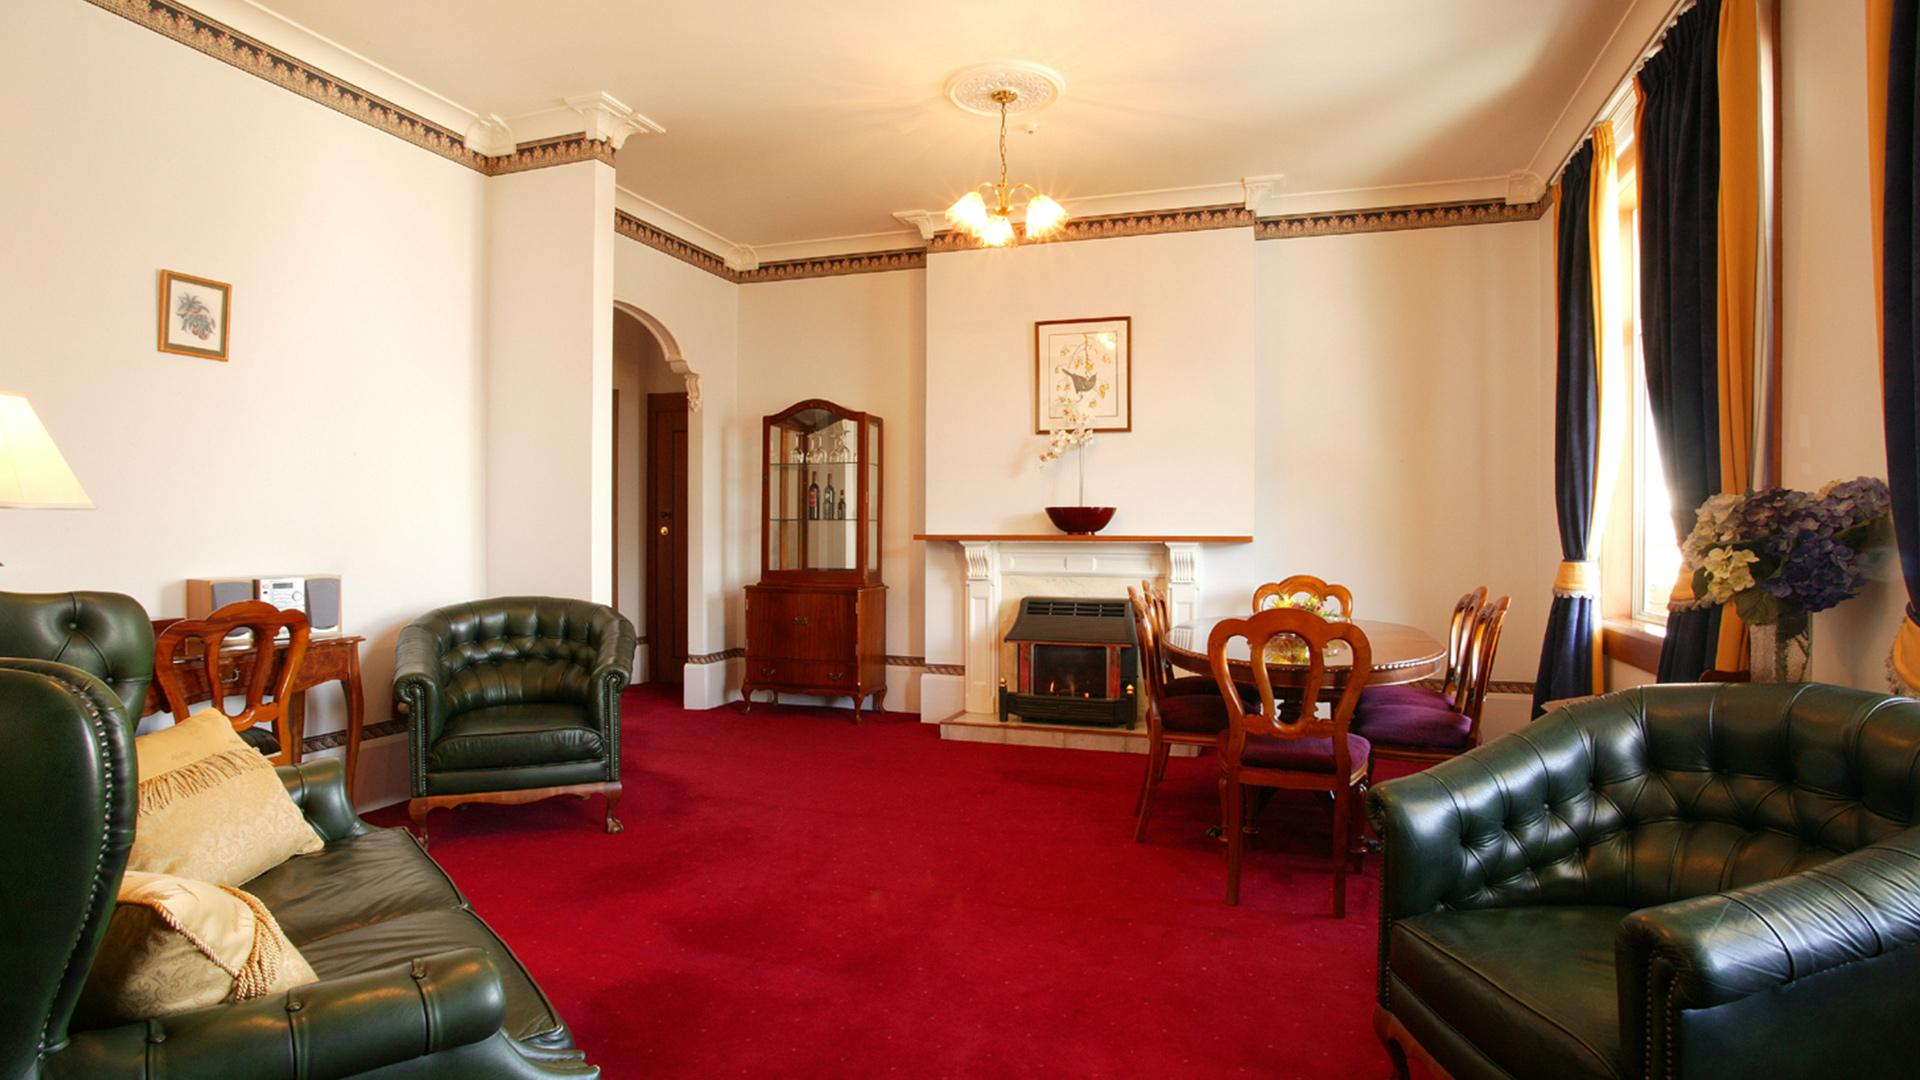 Vice Regal Suite image 1 at The County Hotel Napier by null, Hawke's Bay, New Zealand